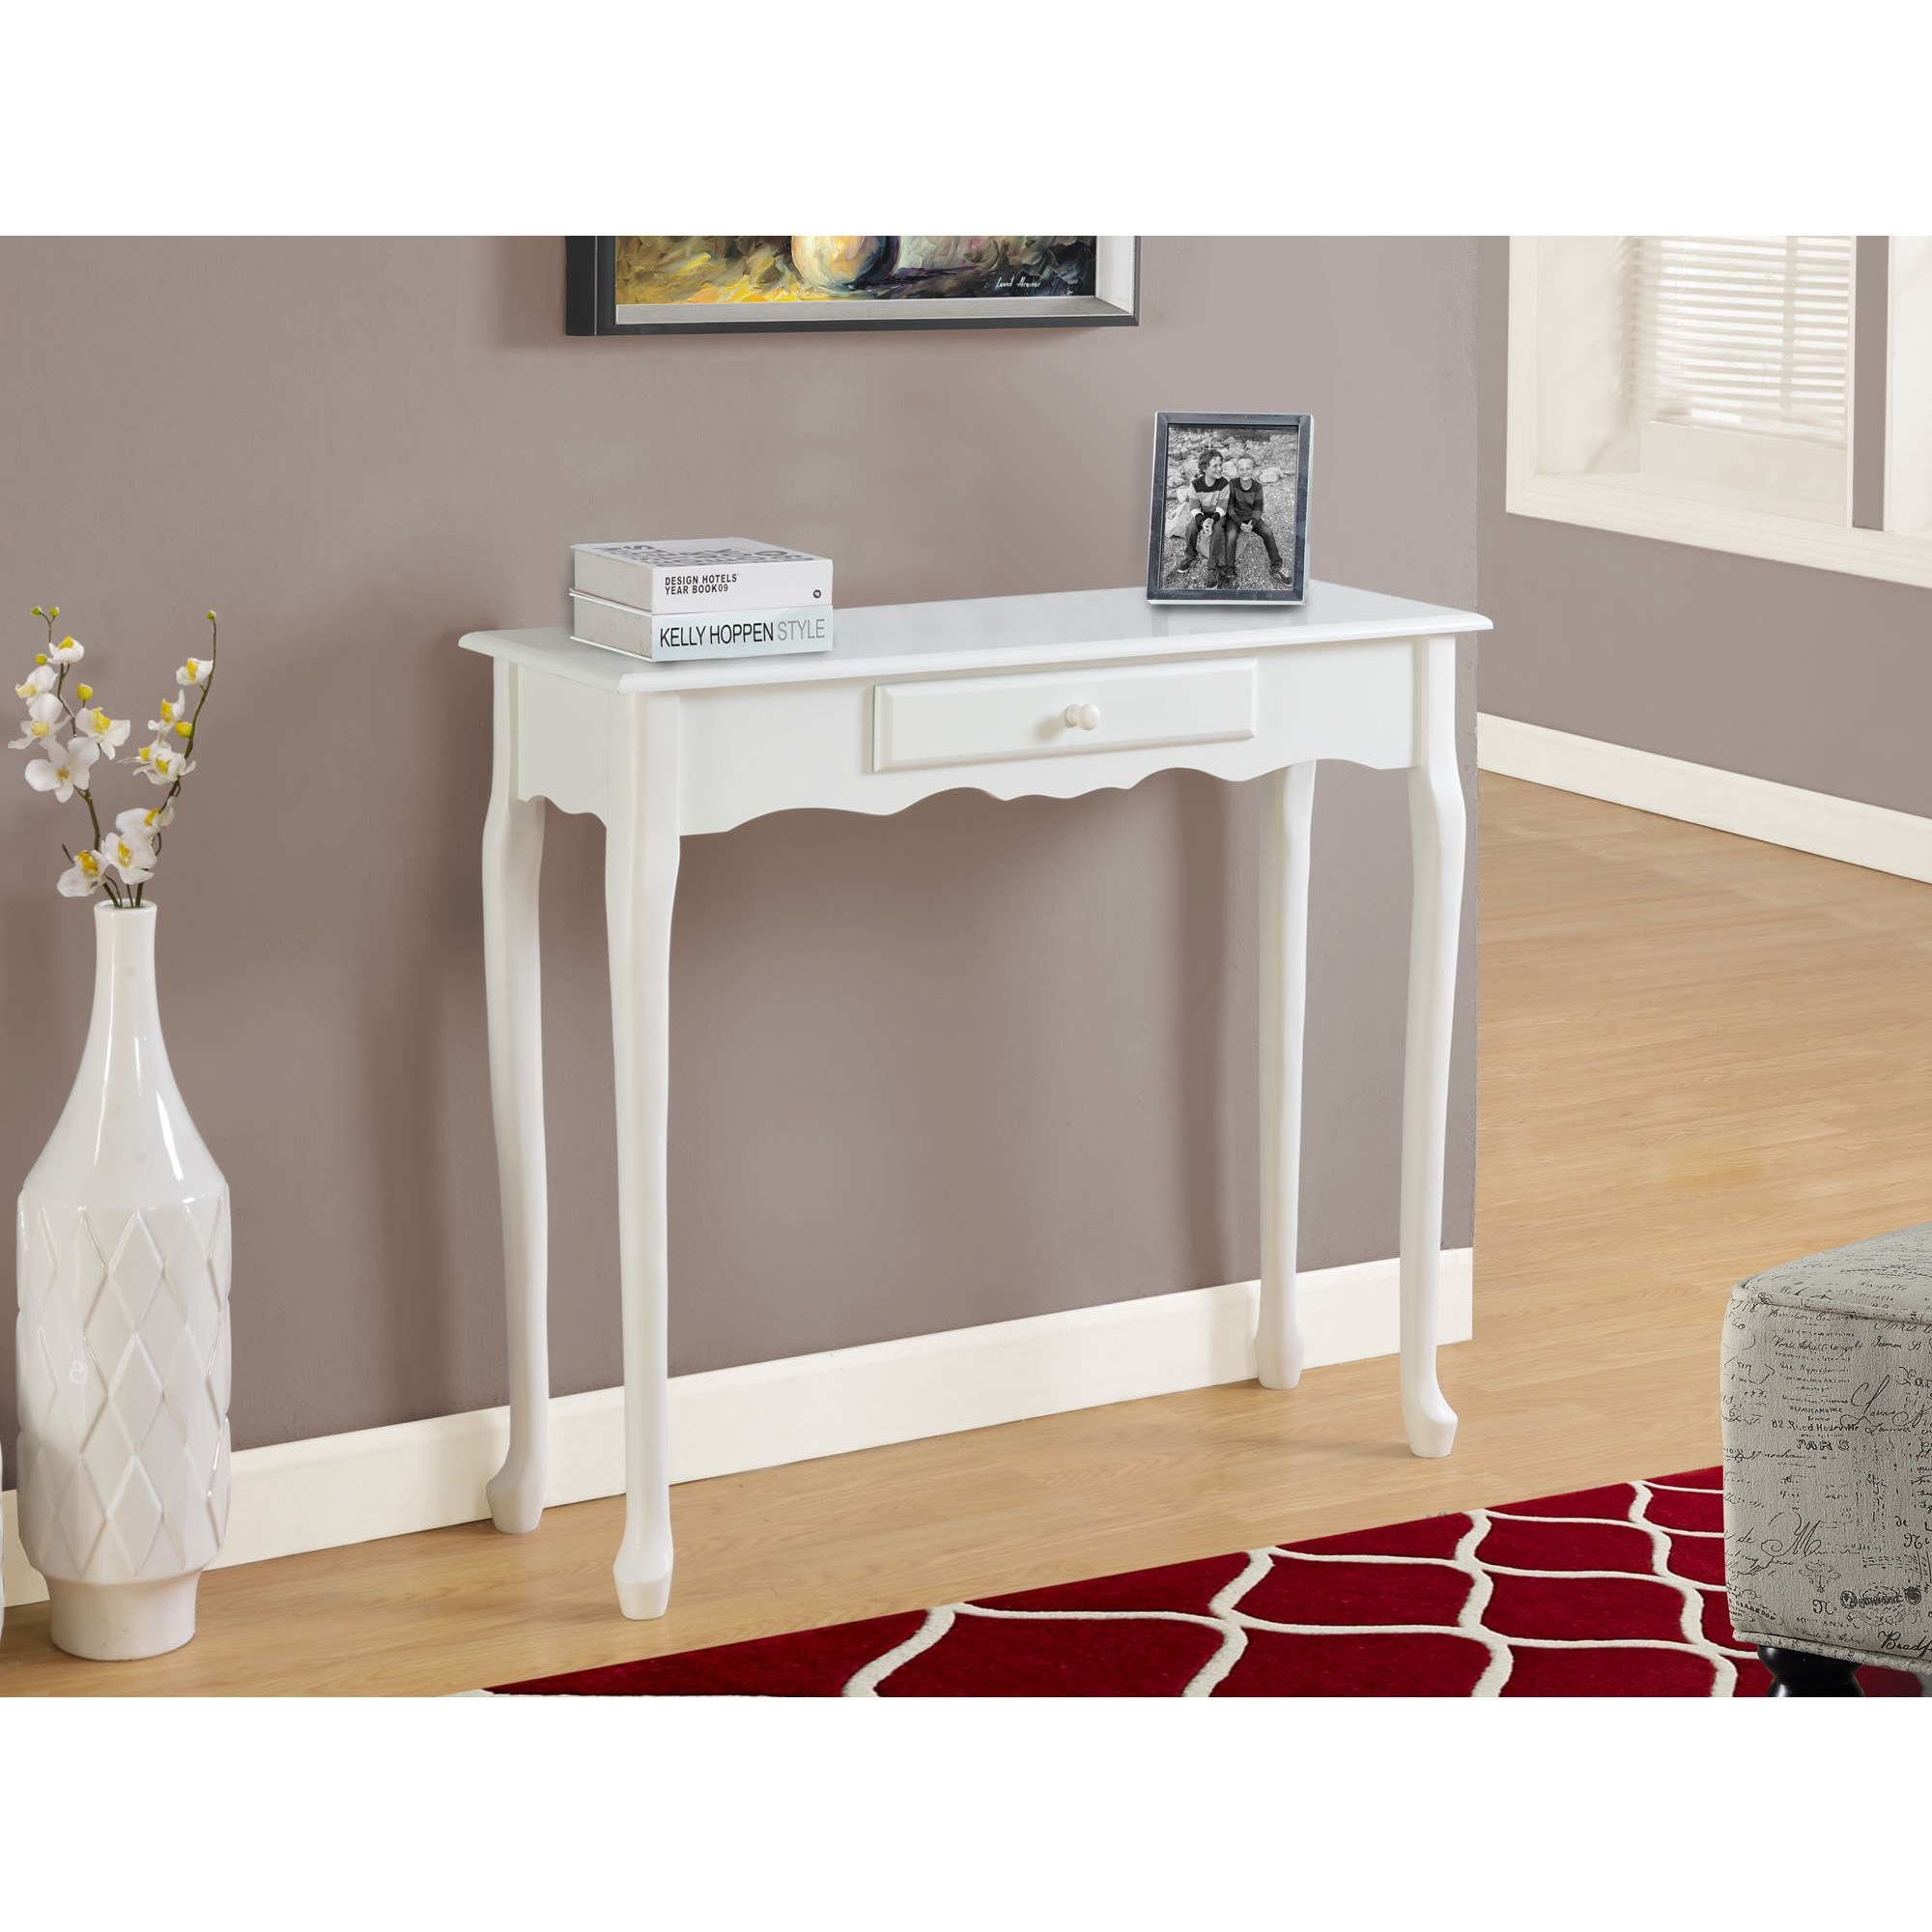 accent table antique white hall console free shipping today black pottery barn round wicker side wood and mirrored bedside ikea slim replica scandinavian furniture tops outdoor